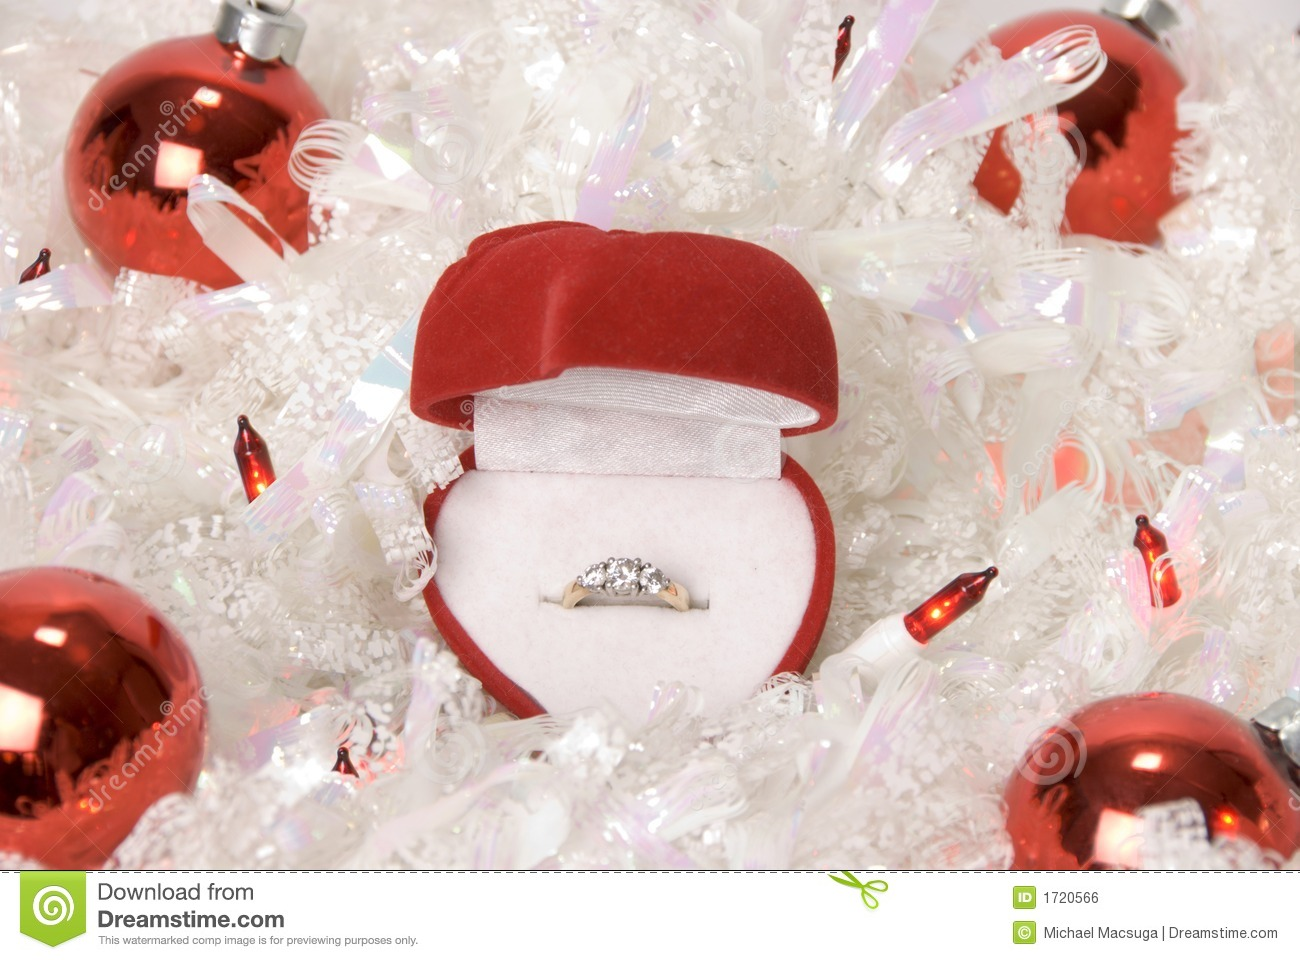 Engagement ring christmas ornament - Christmas Engagement Ring